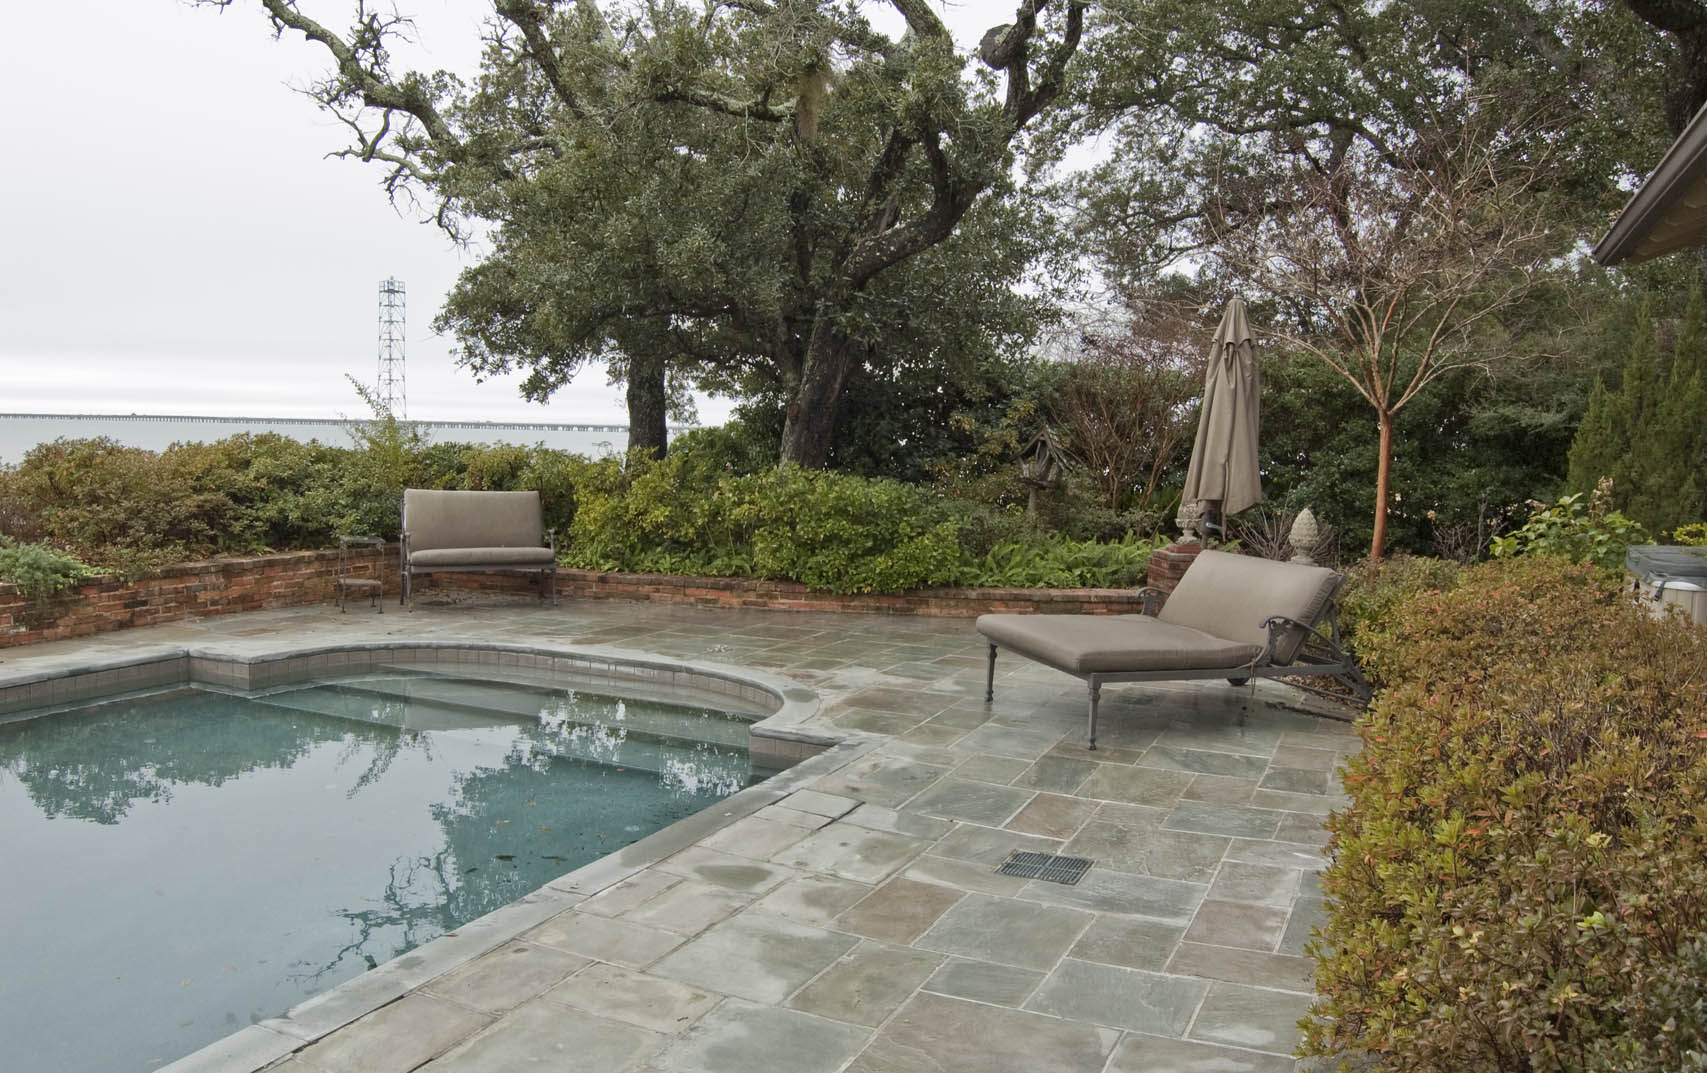 Woodfin house at film north florida pensacola bay area - Waterloo swimming pool denison tx ...